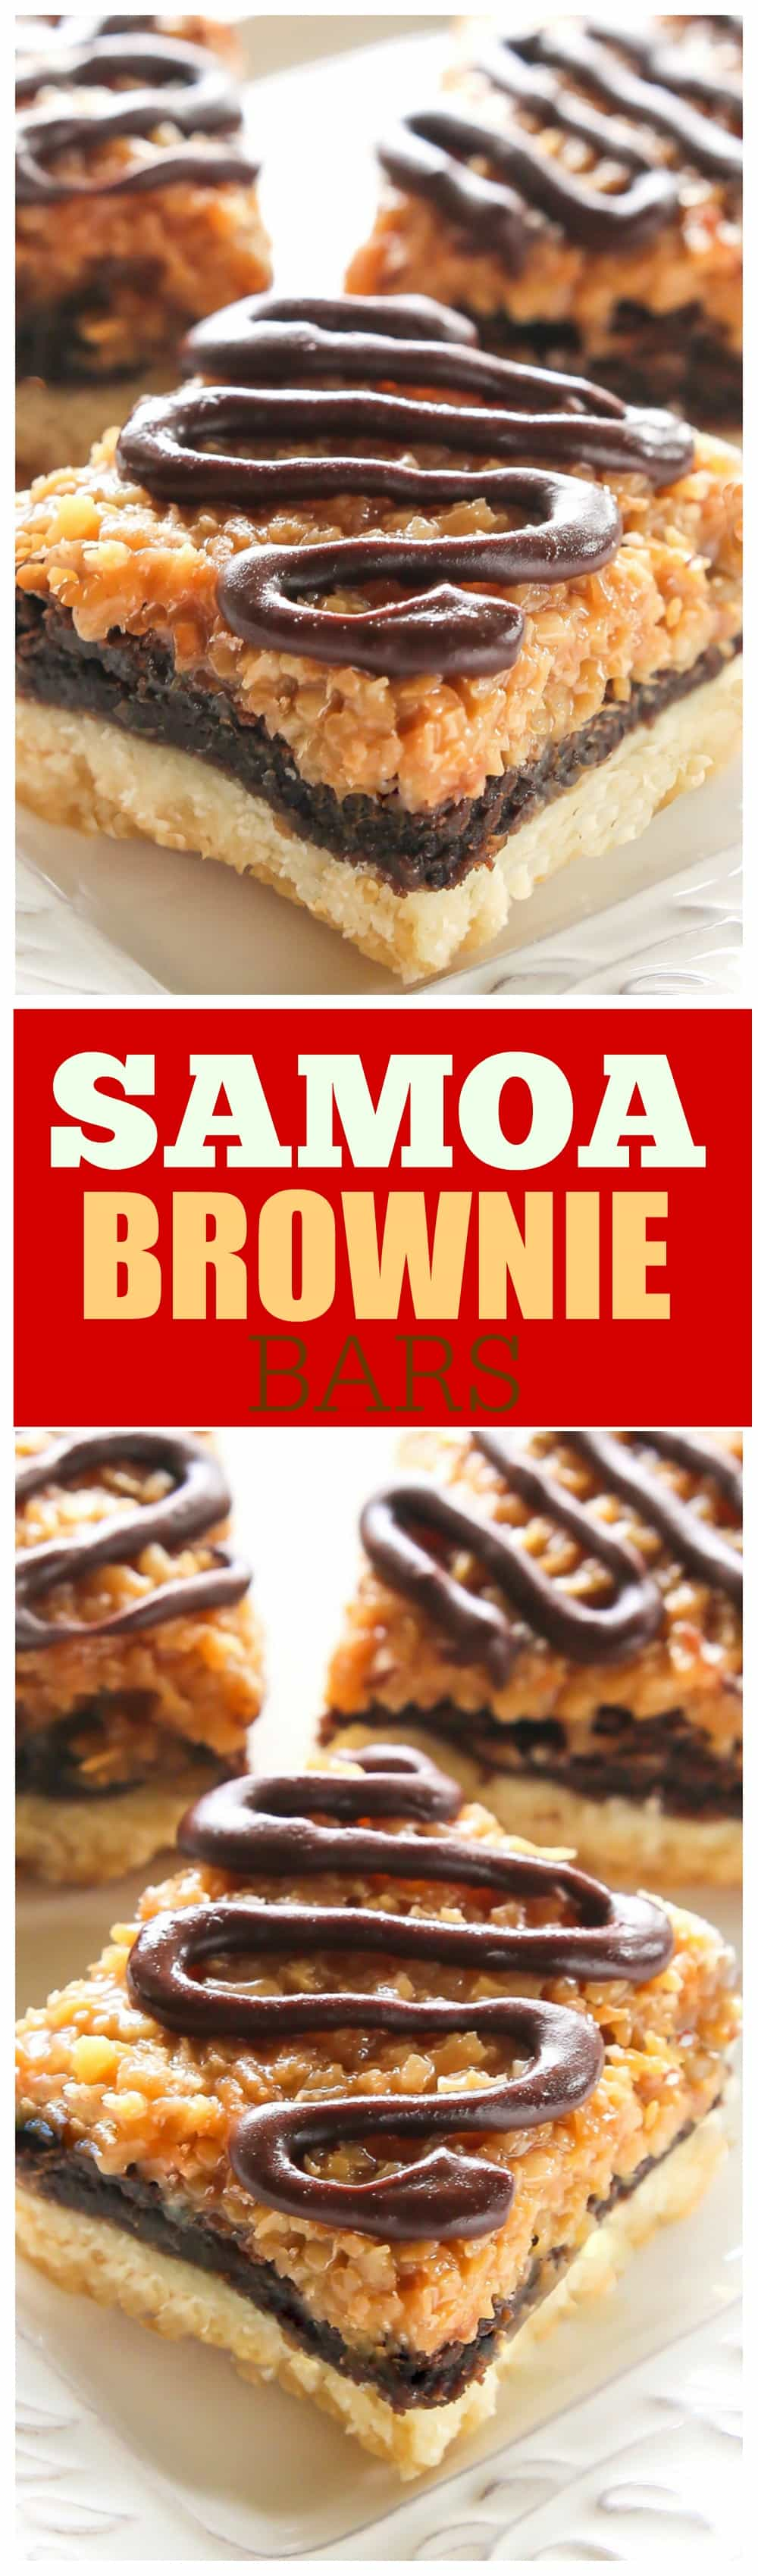 Samoa Brownie Bars - A shortbread crust topped with a brownie layer and caramel coconut inspired by the girl scout cookie. #samoa #brownies #coconut #dessert #recipe